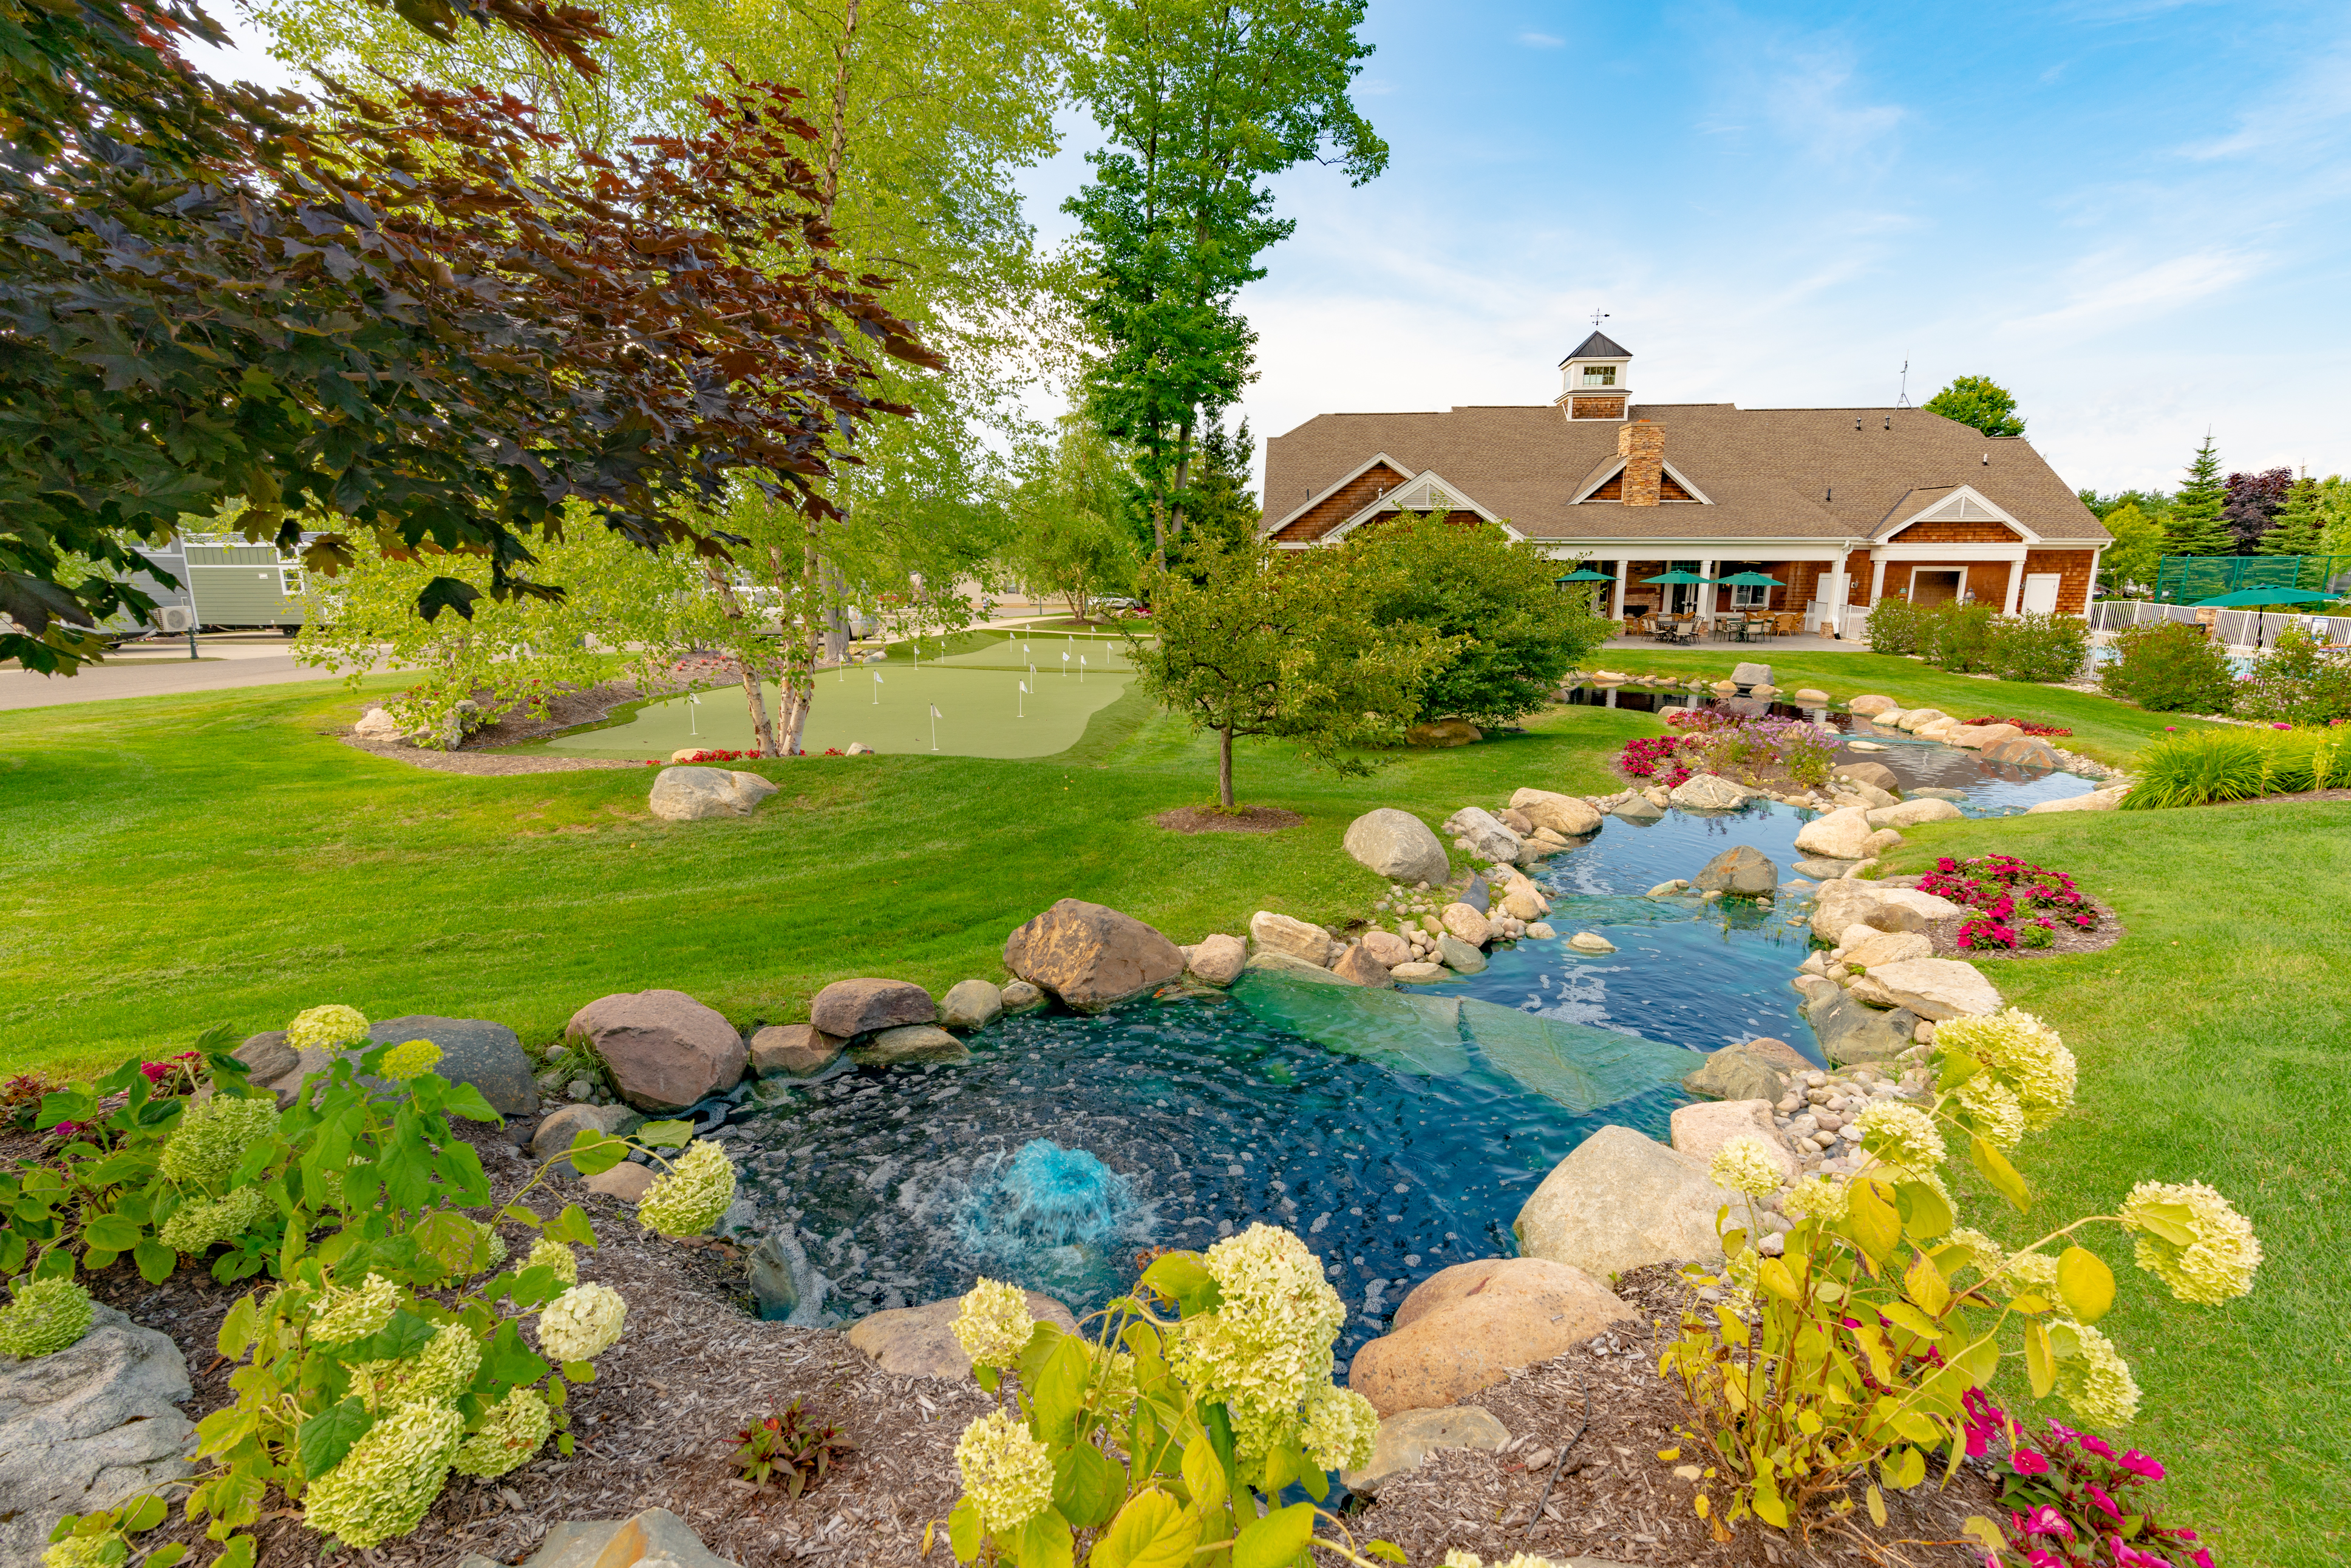 Stunning landscaping at the luxurious Petoskey RV Resort in Petoskey, Michigan